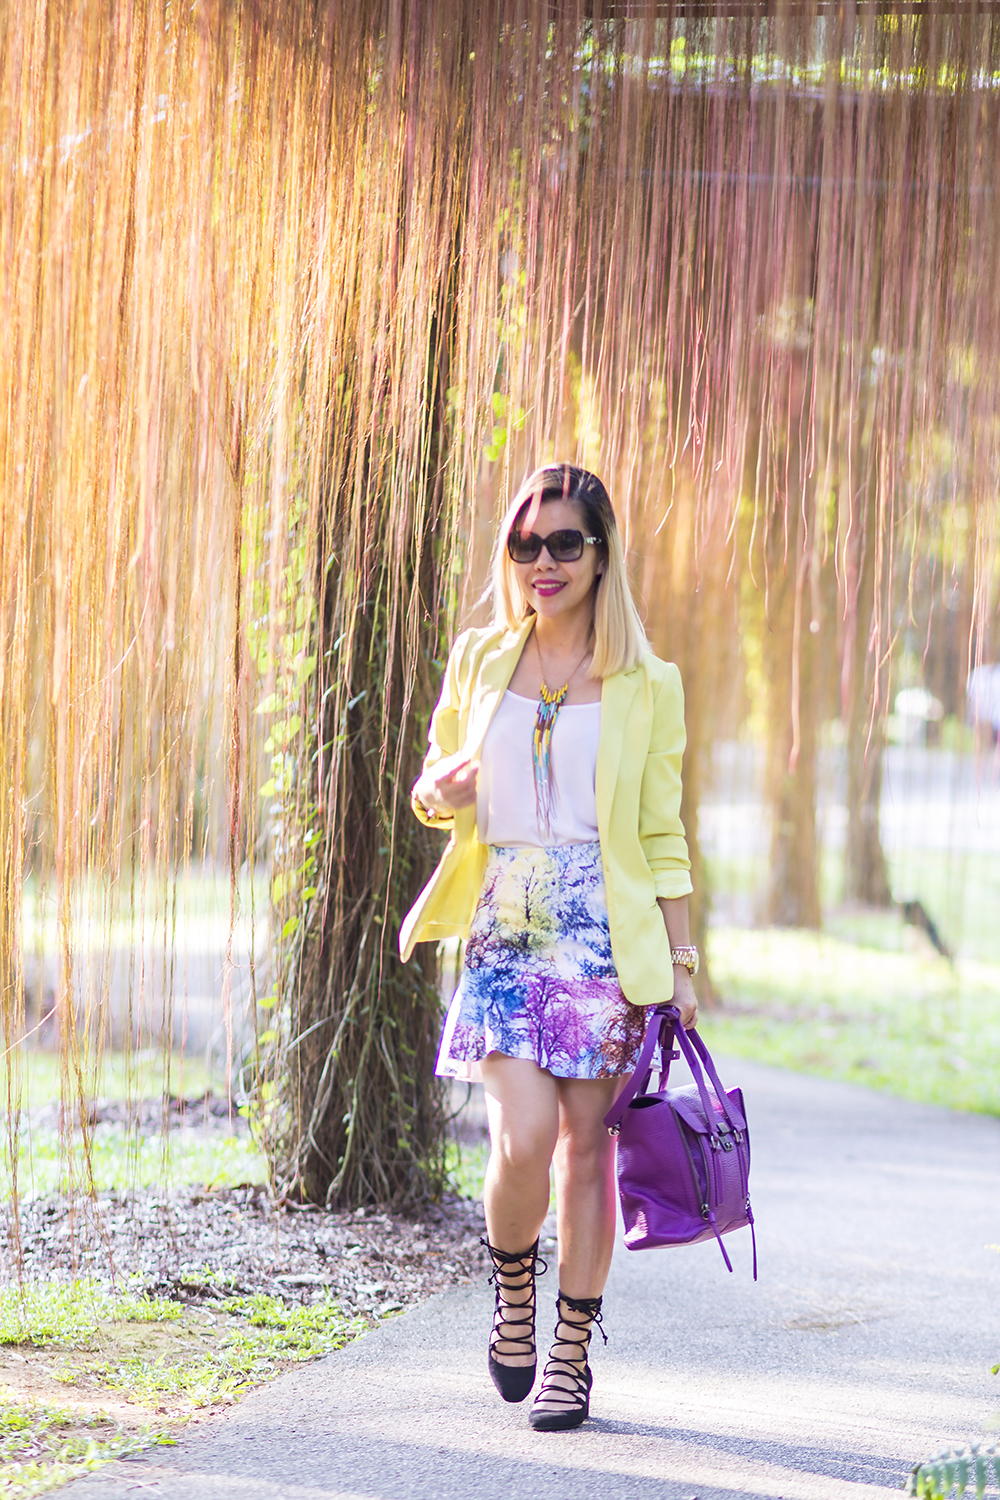 Crystal Phuong- Singapore Fashion Blog- Pretty in neon blazer, printed skirt and lace up shoes